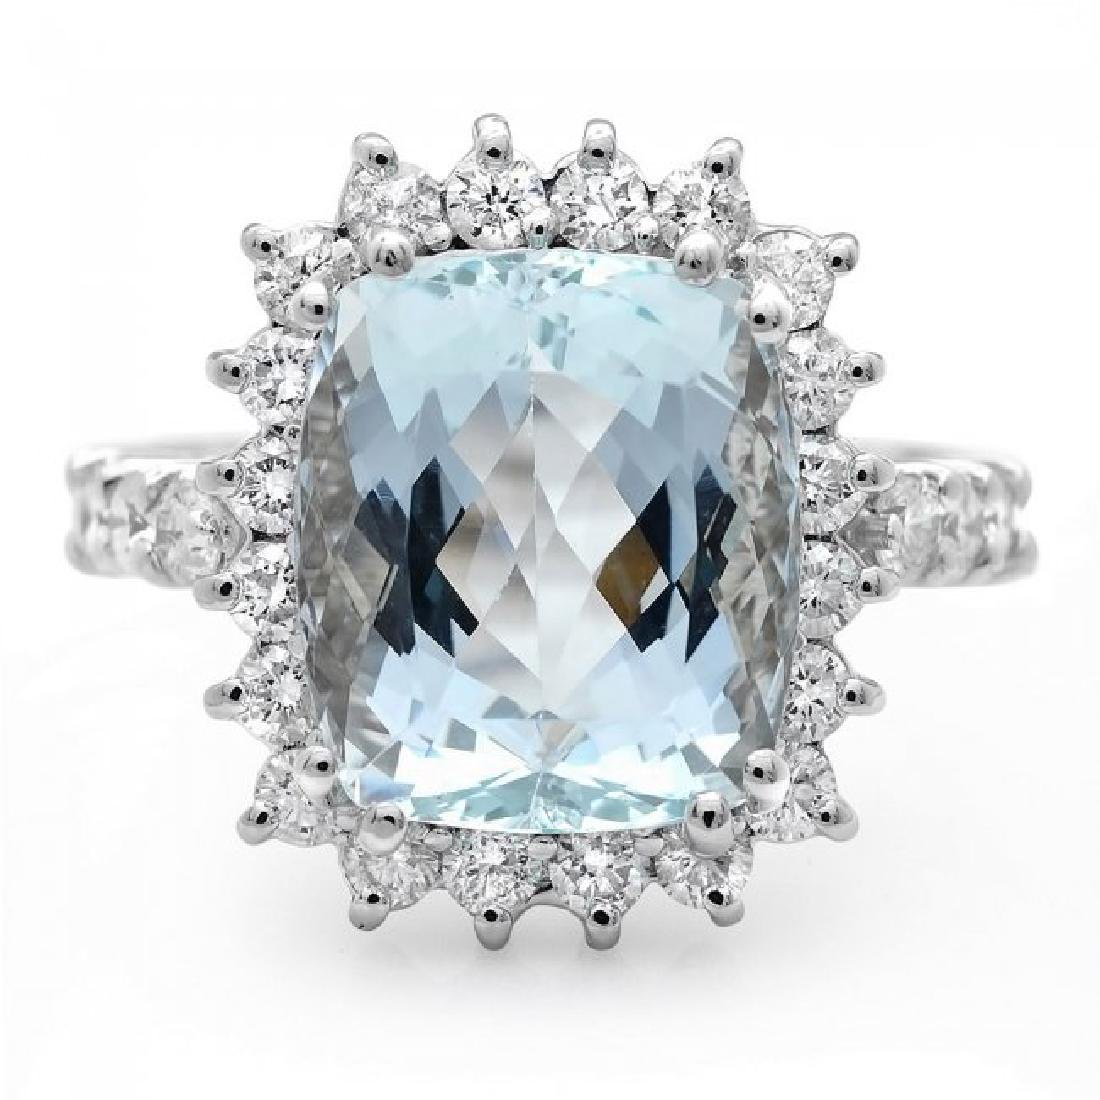 14k Gold 6.00ct Aquamarine 1.00ct Diamond Ring - 2